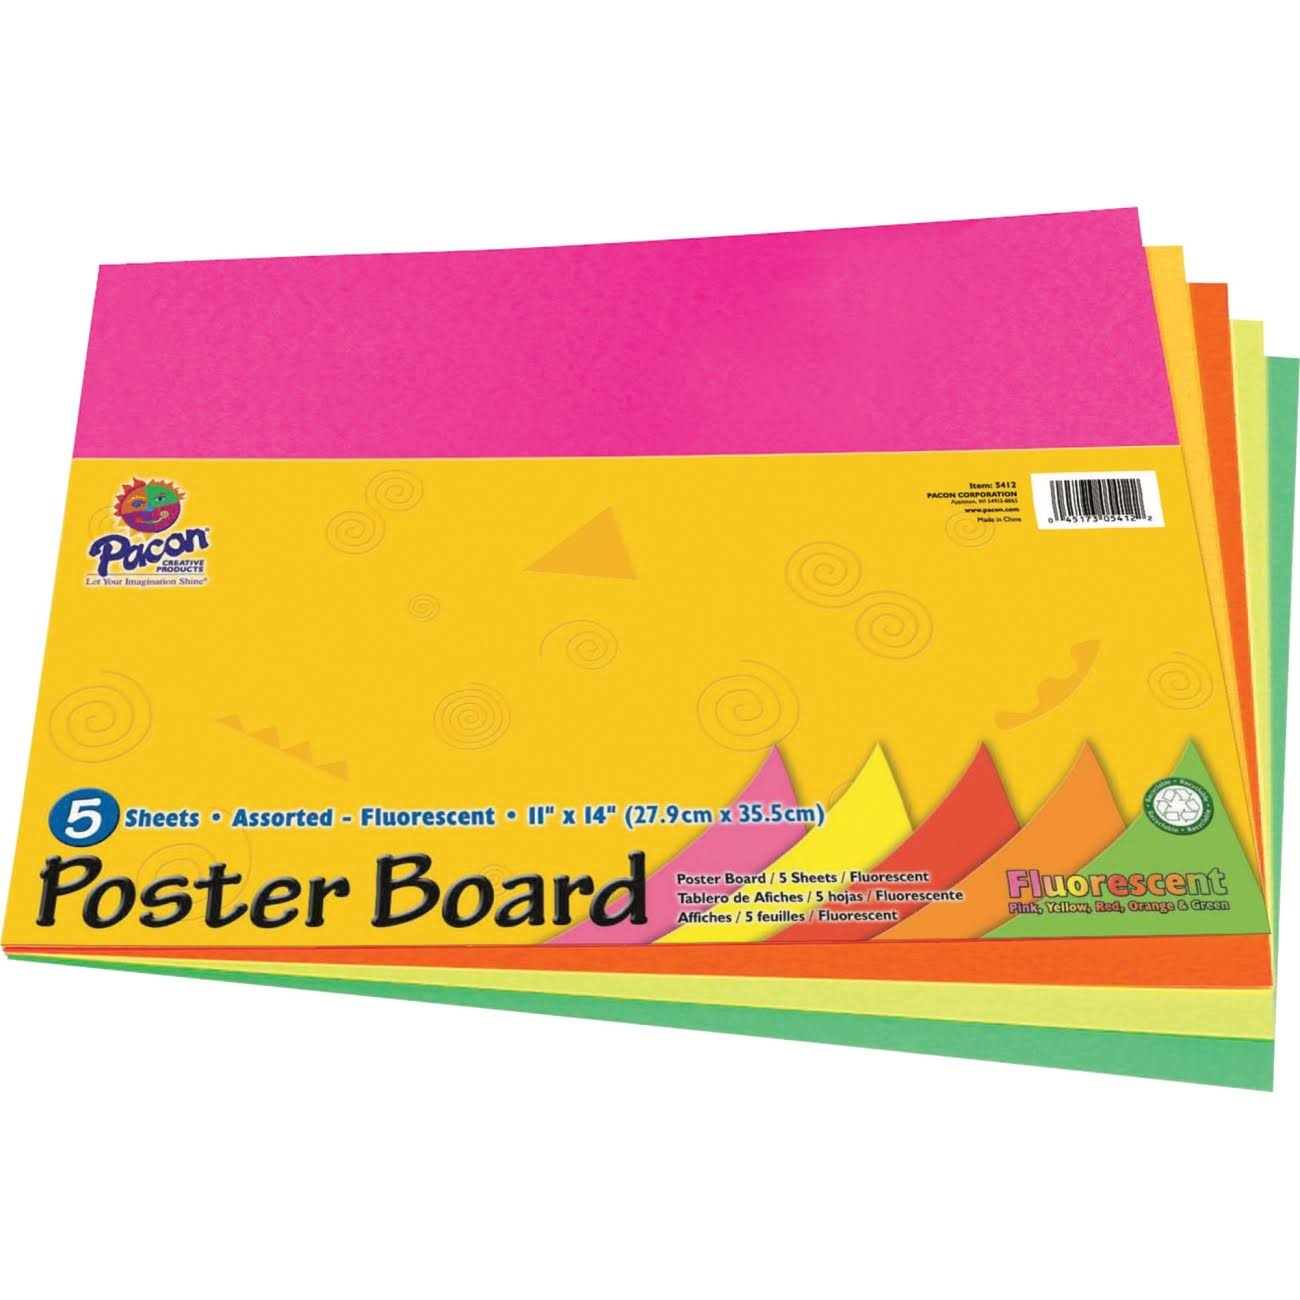 "Pacon Peacock Recyclable Poster Board - Pink/Orange/Red/Yellow and Green, 11"" x 14"""